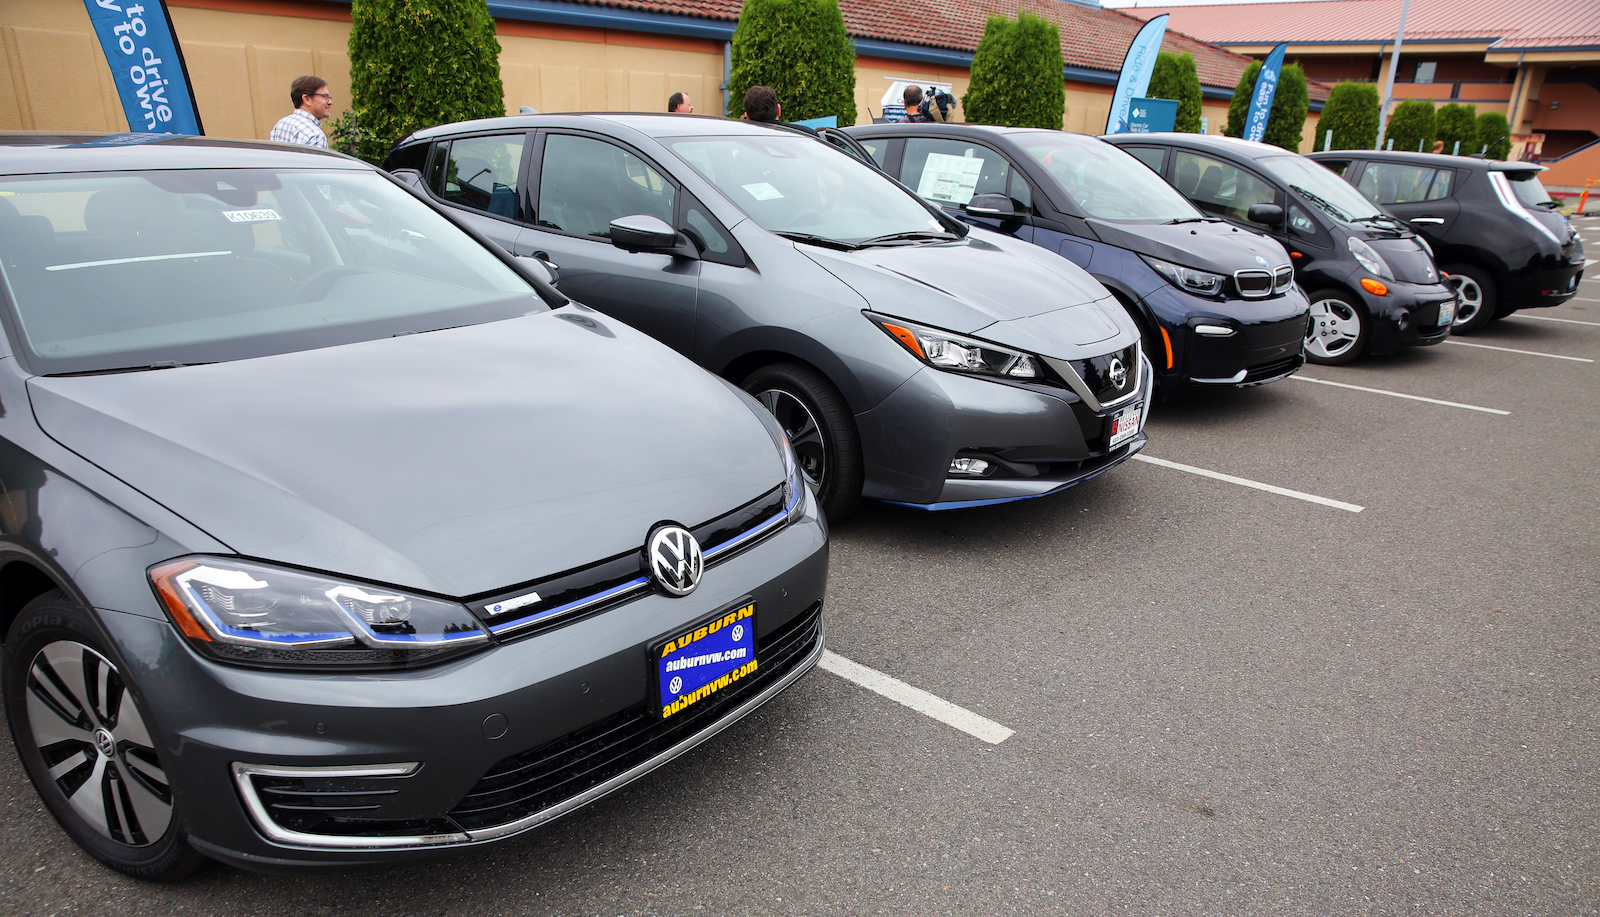 Electric cars lined up for a test drive event in Renton, Washington.